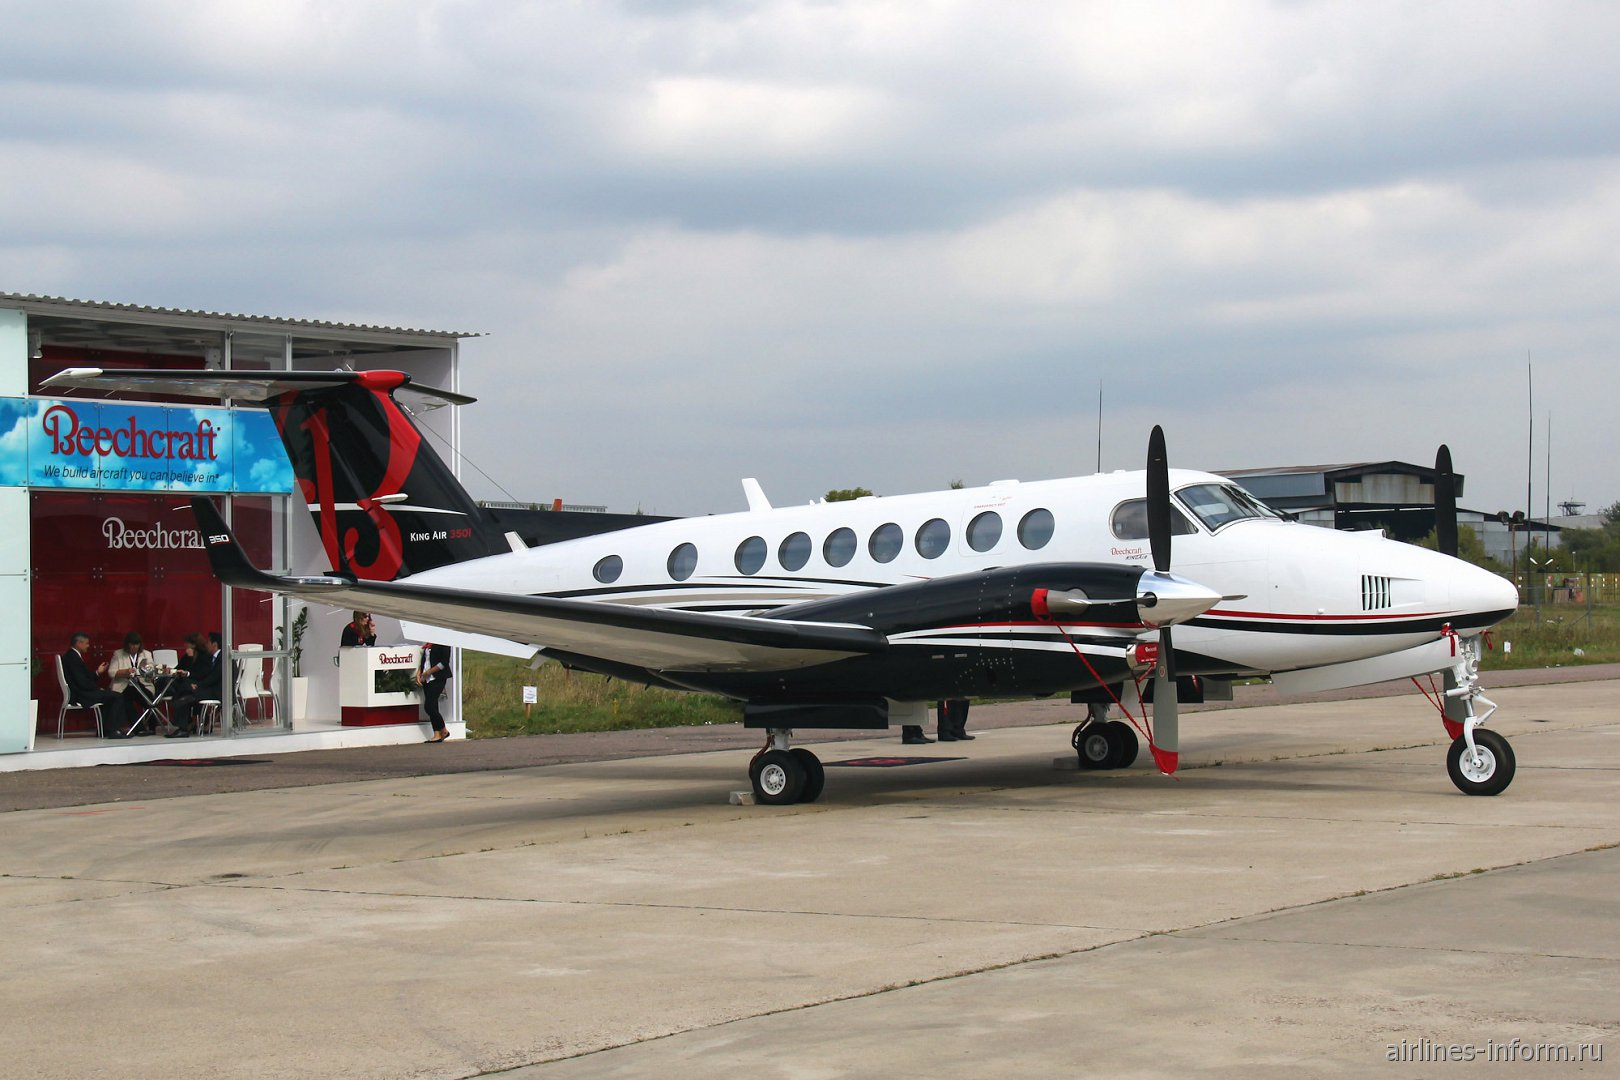 Самолет Beechcraft King Air 350 на авиасалоне МАКС-2013